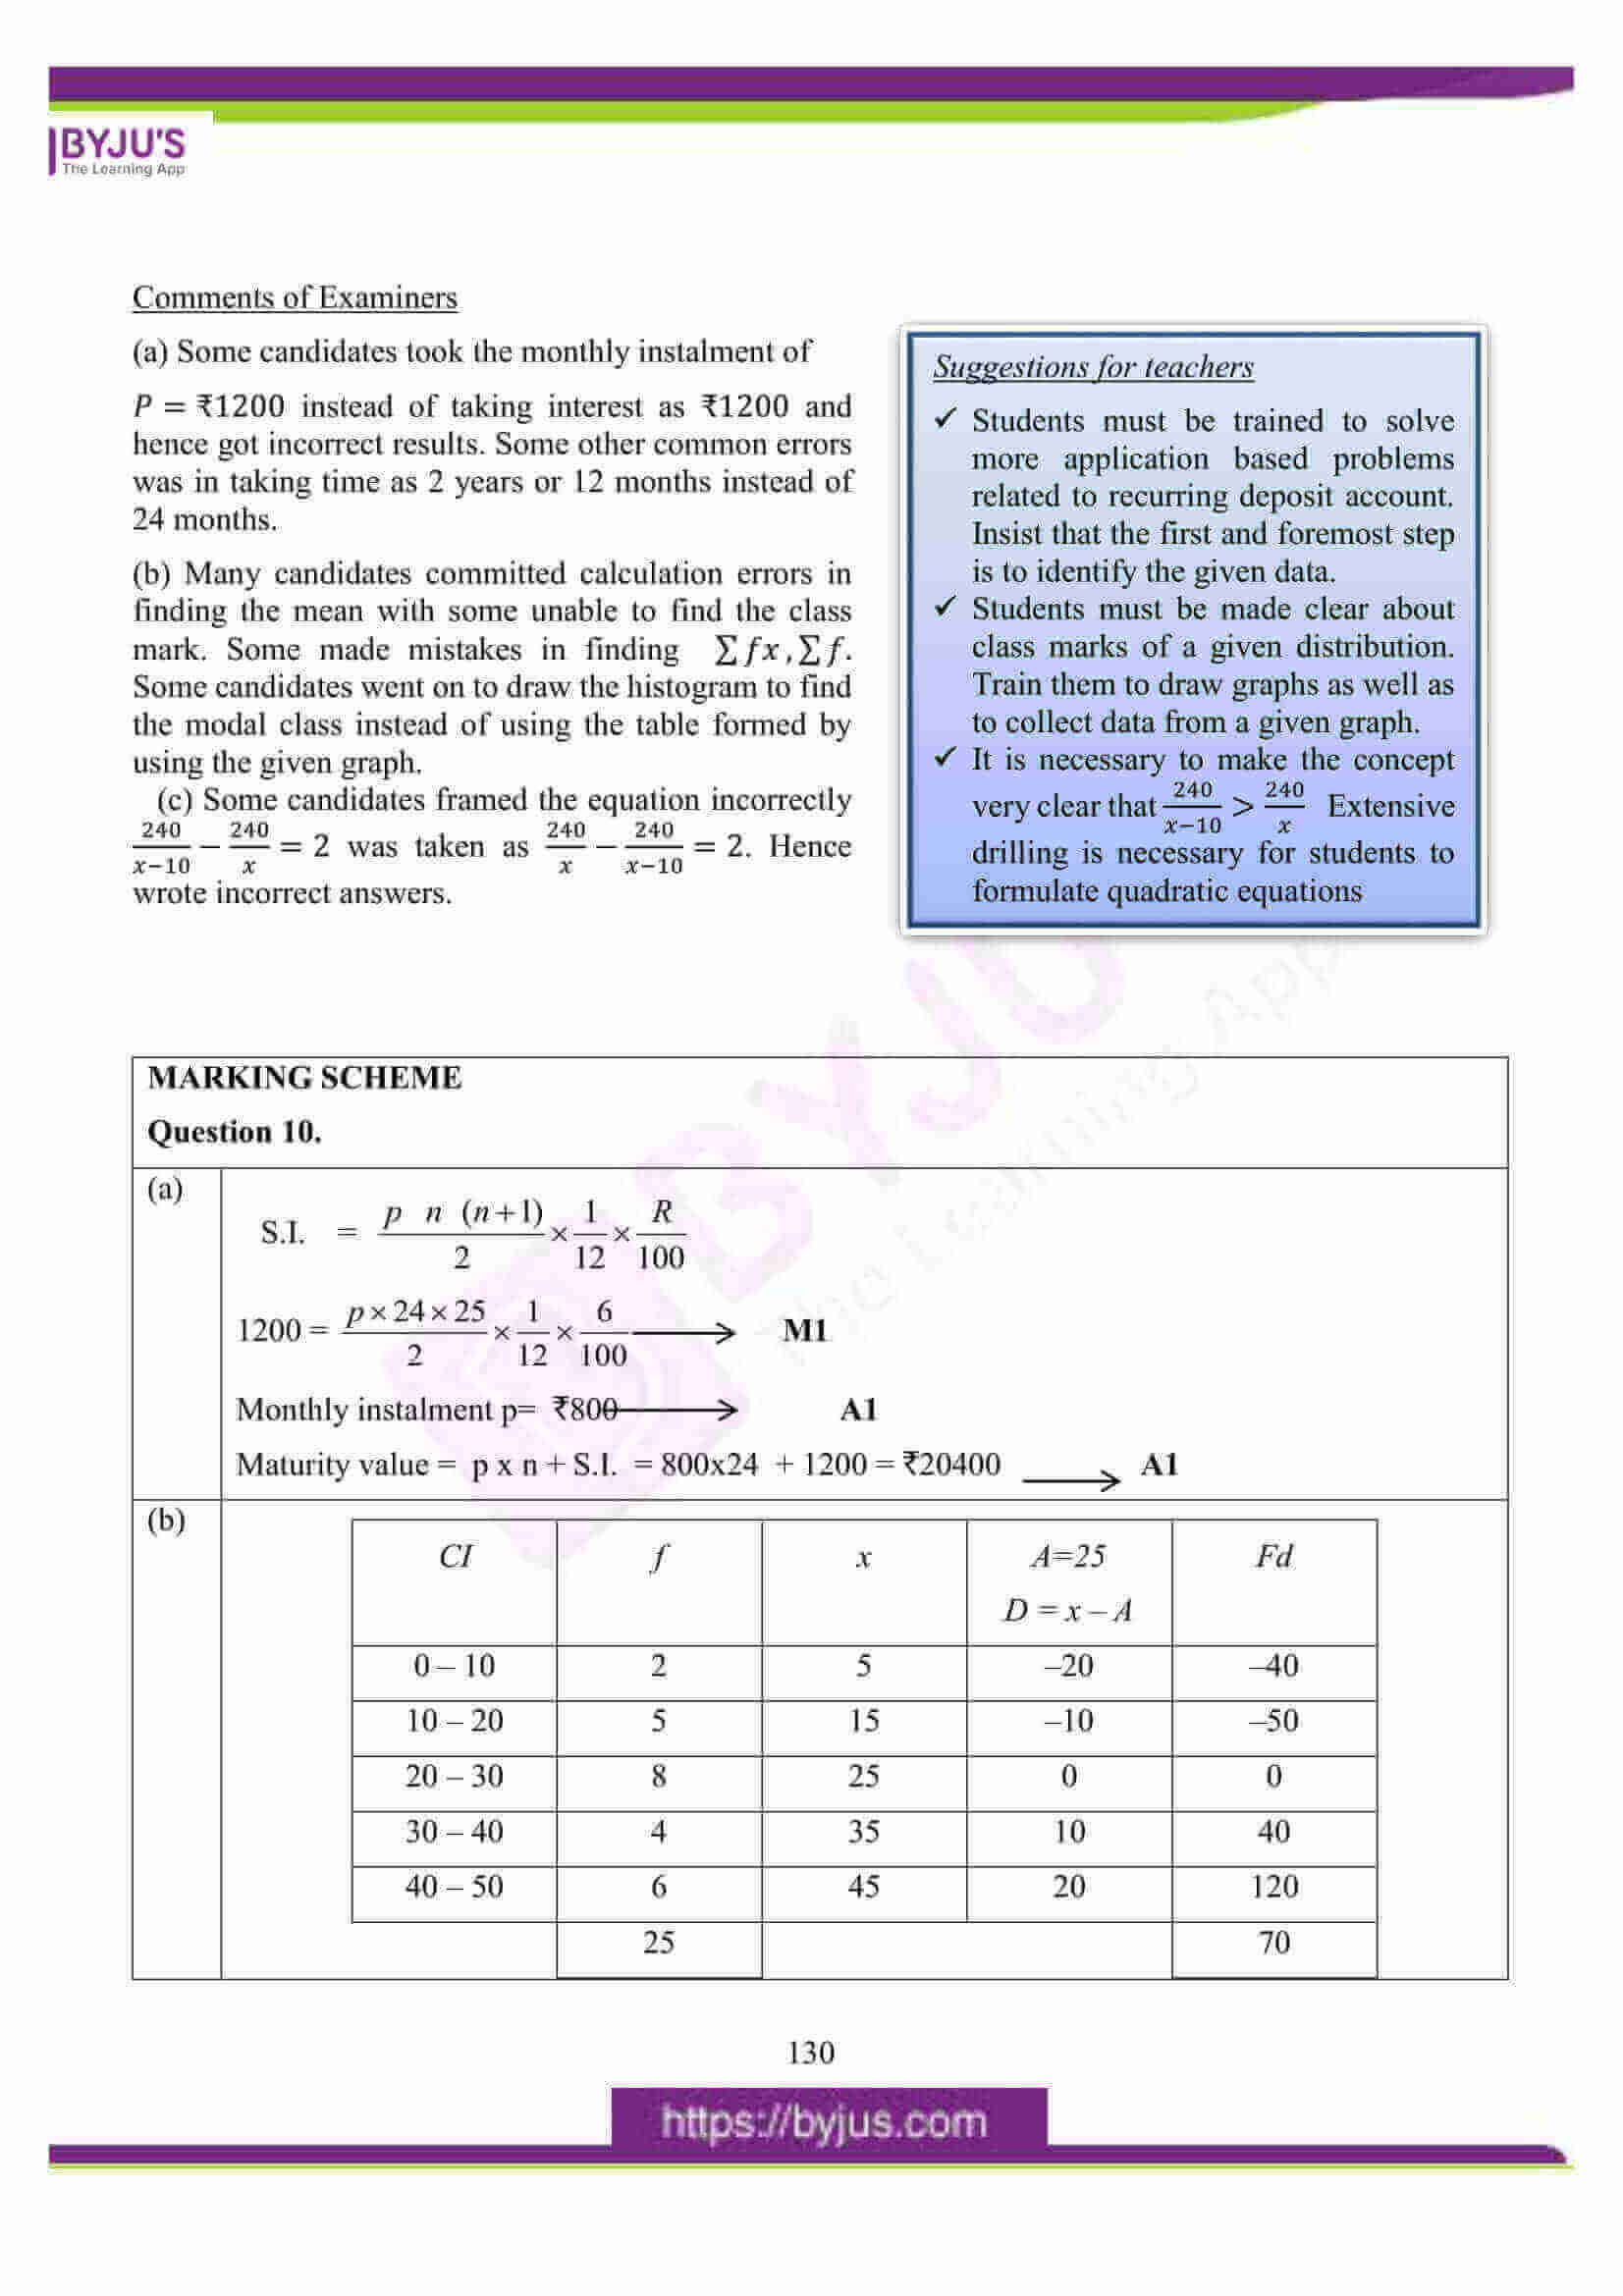 icse class 10 maths question paper solution 2016 24